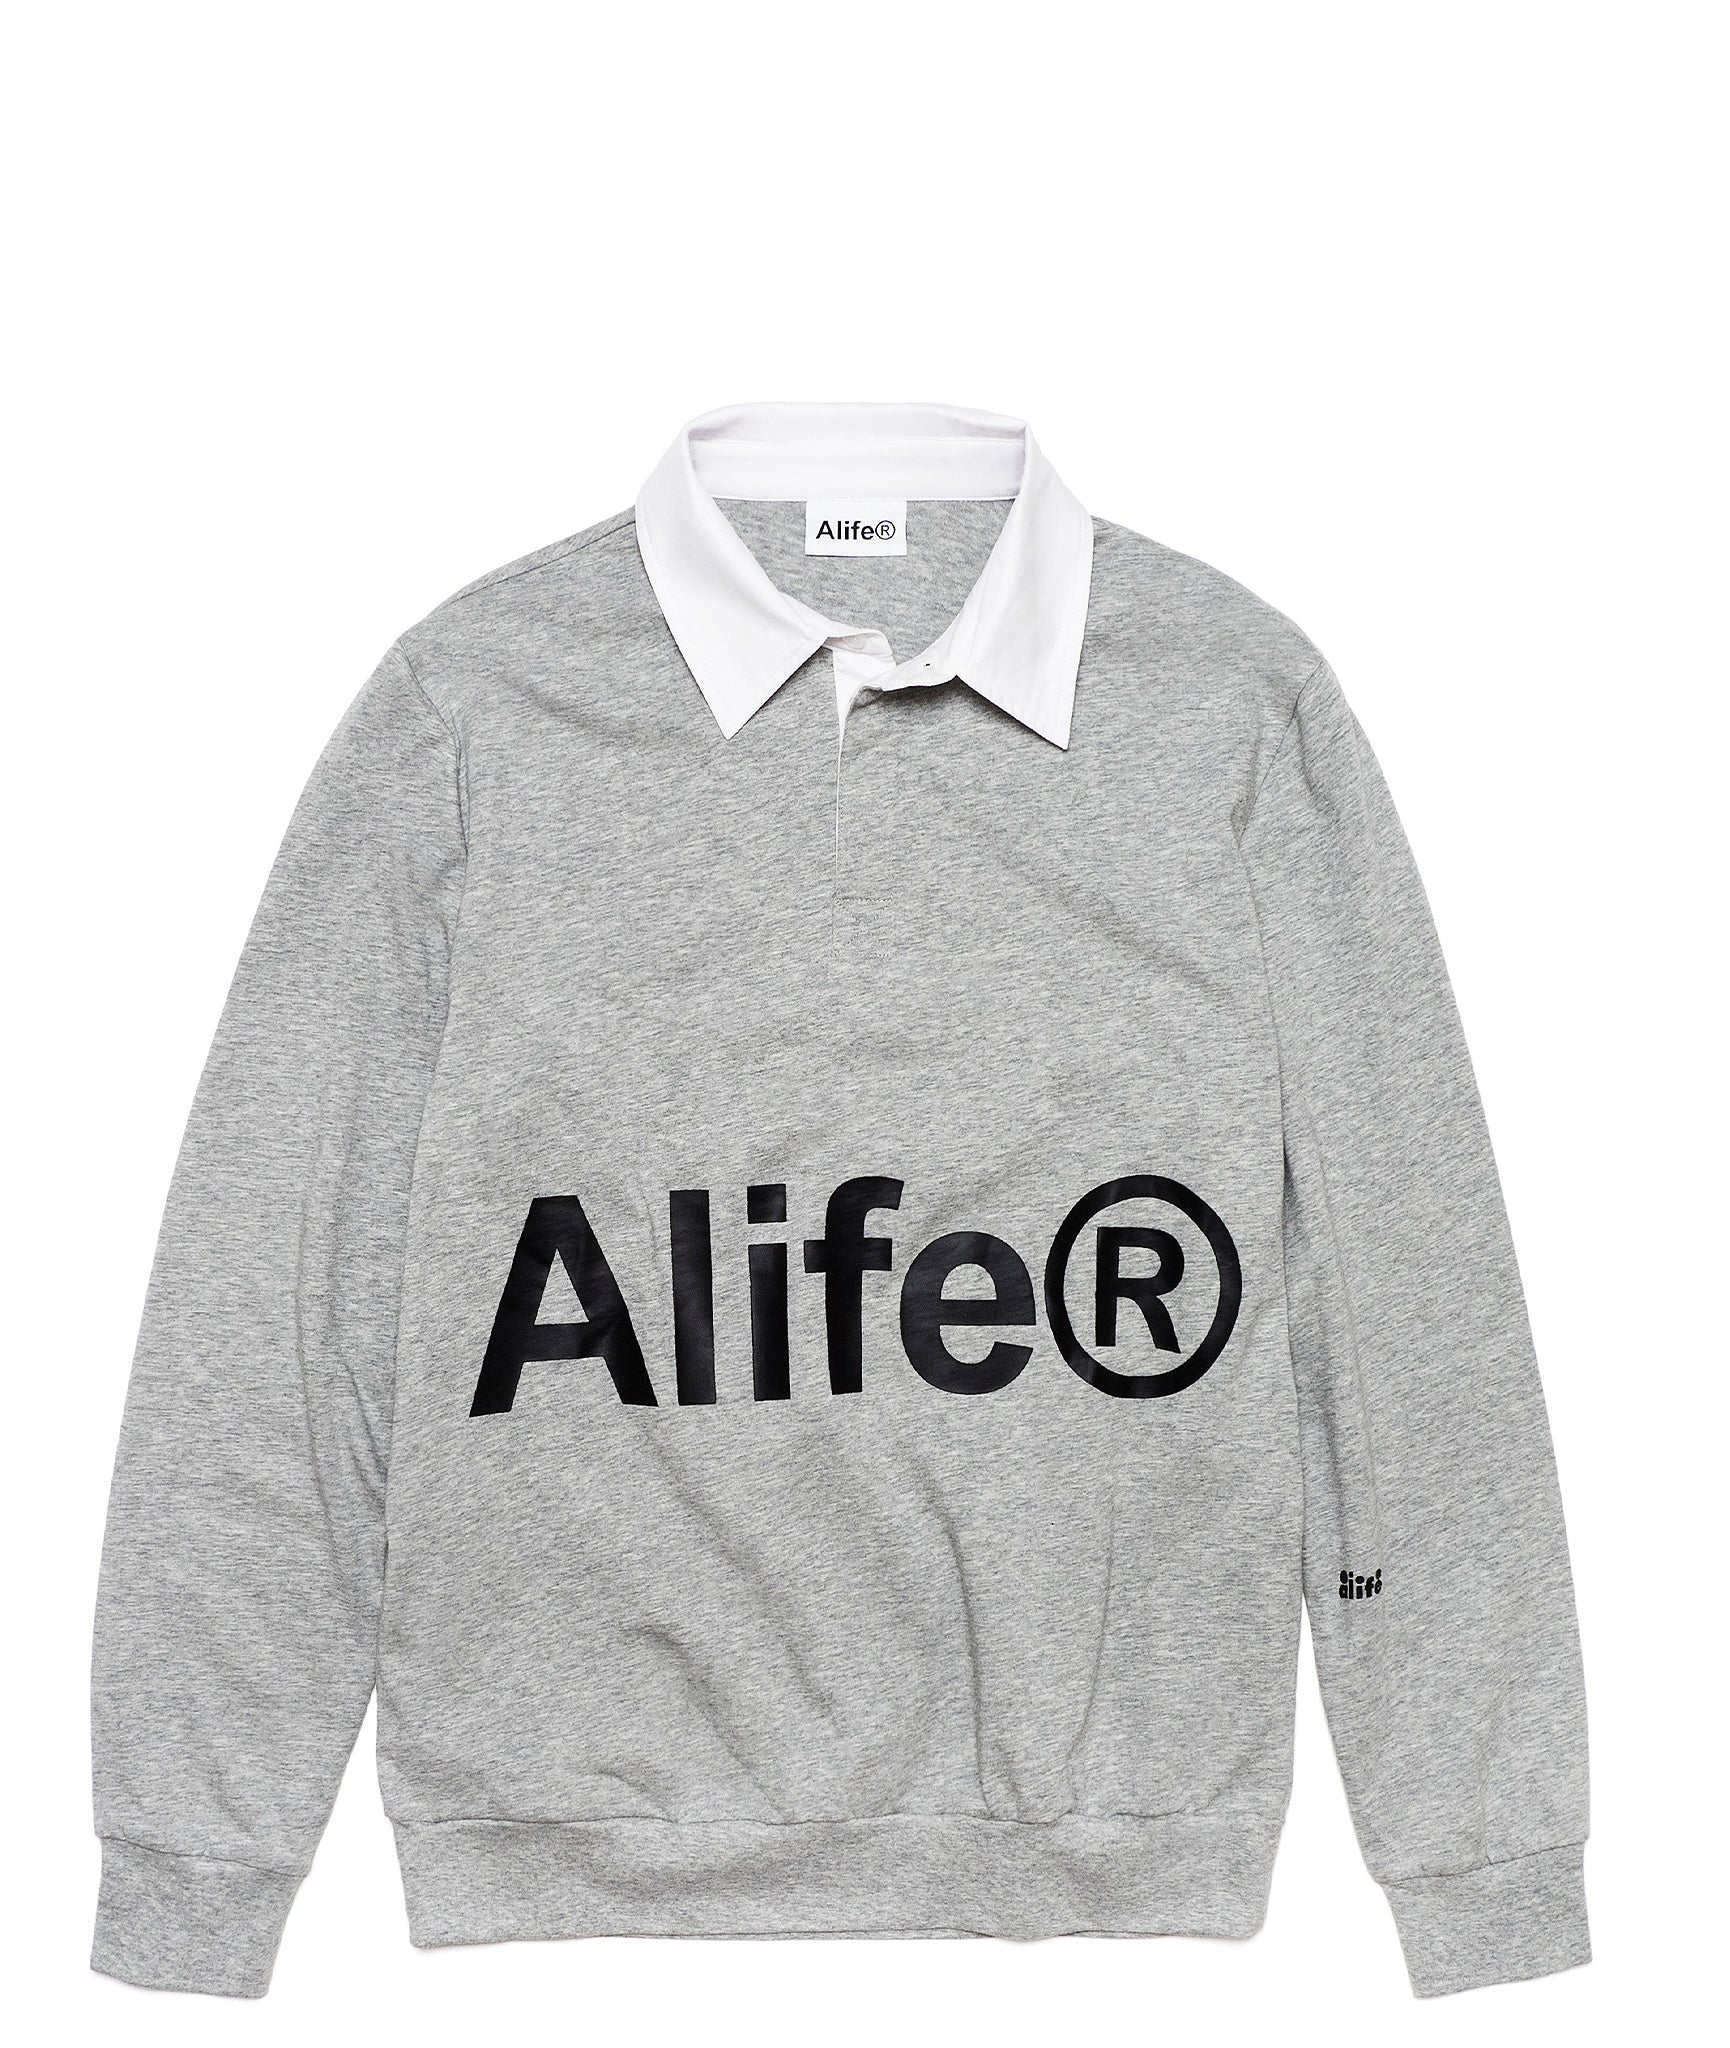 Alife Registered Rugby